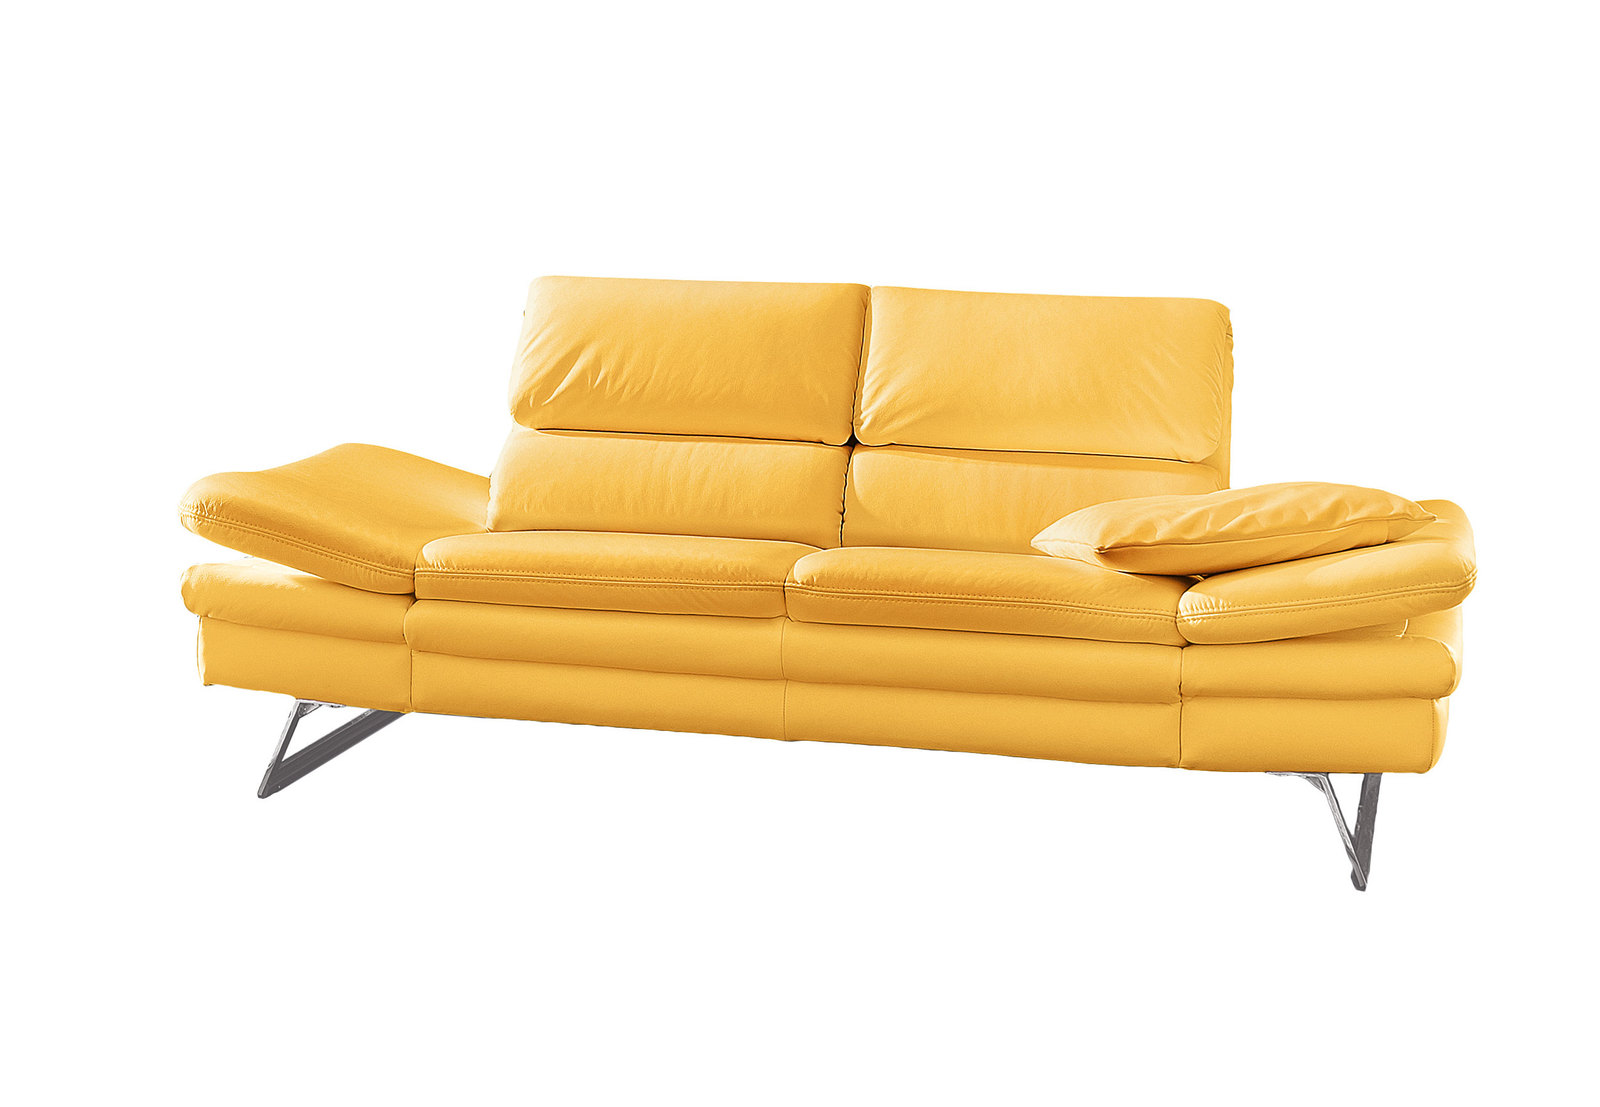 Sofa Hudson Möbelhaus Yellow Couch Studio